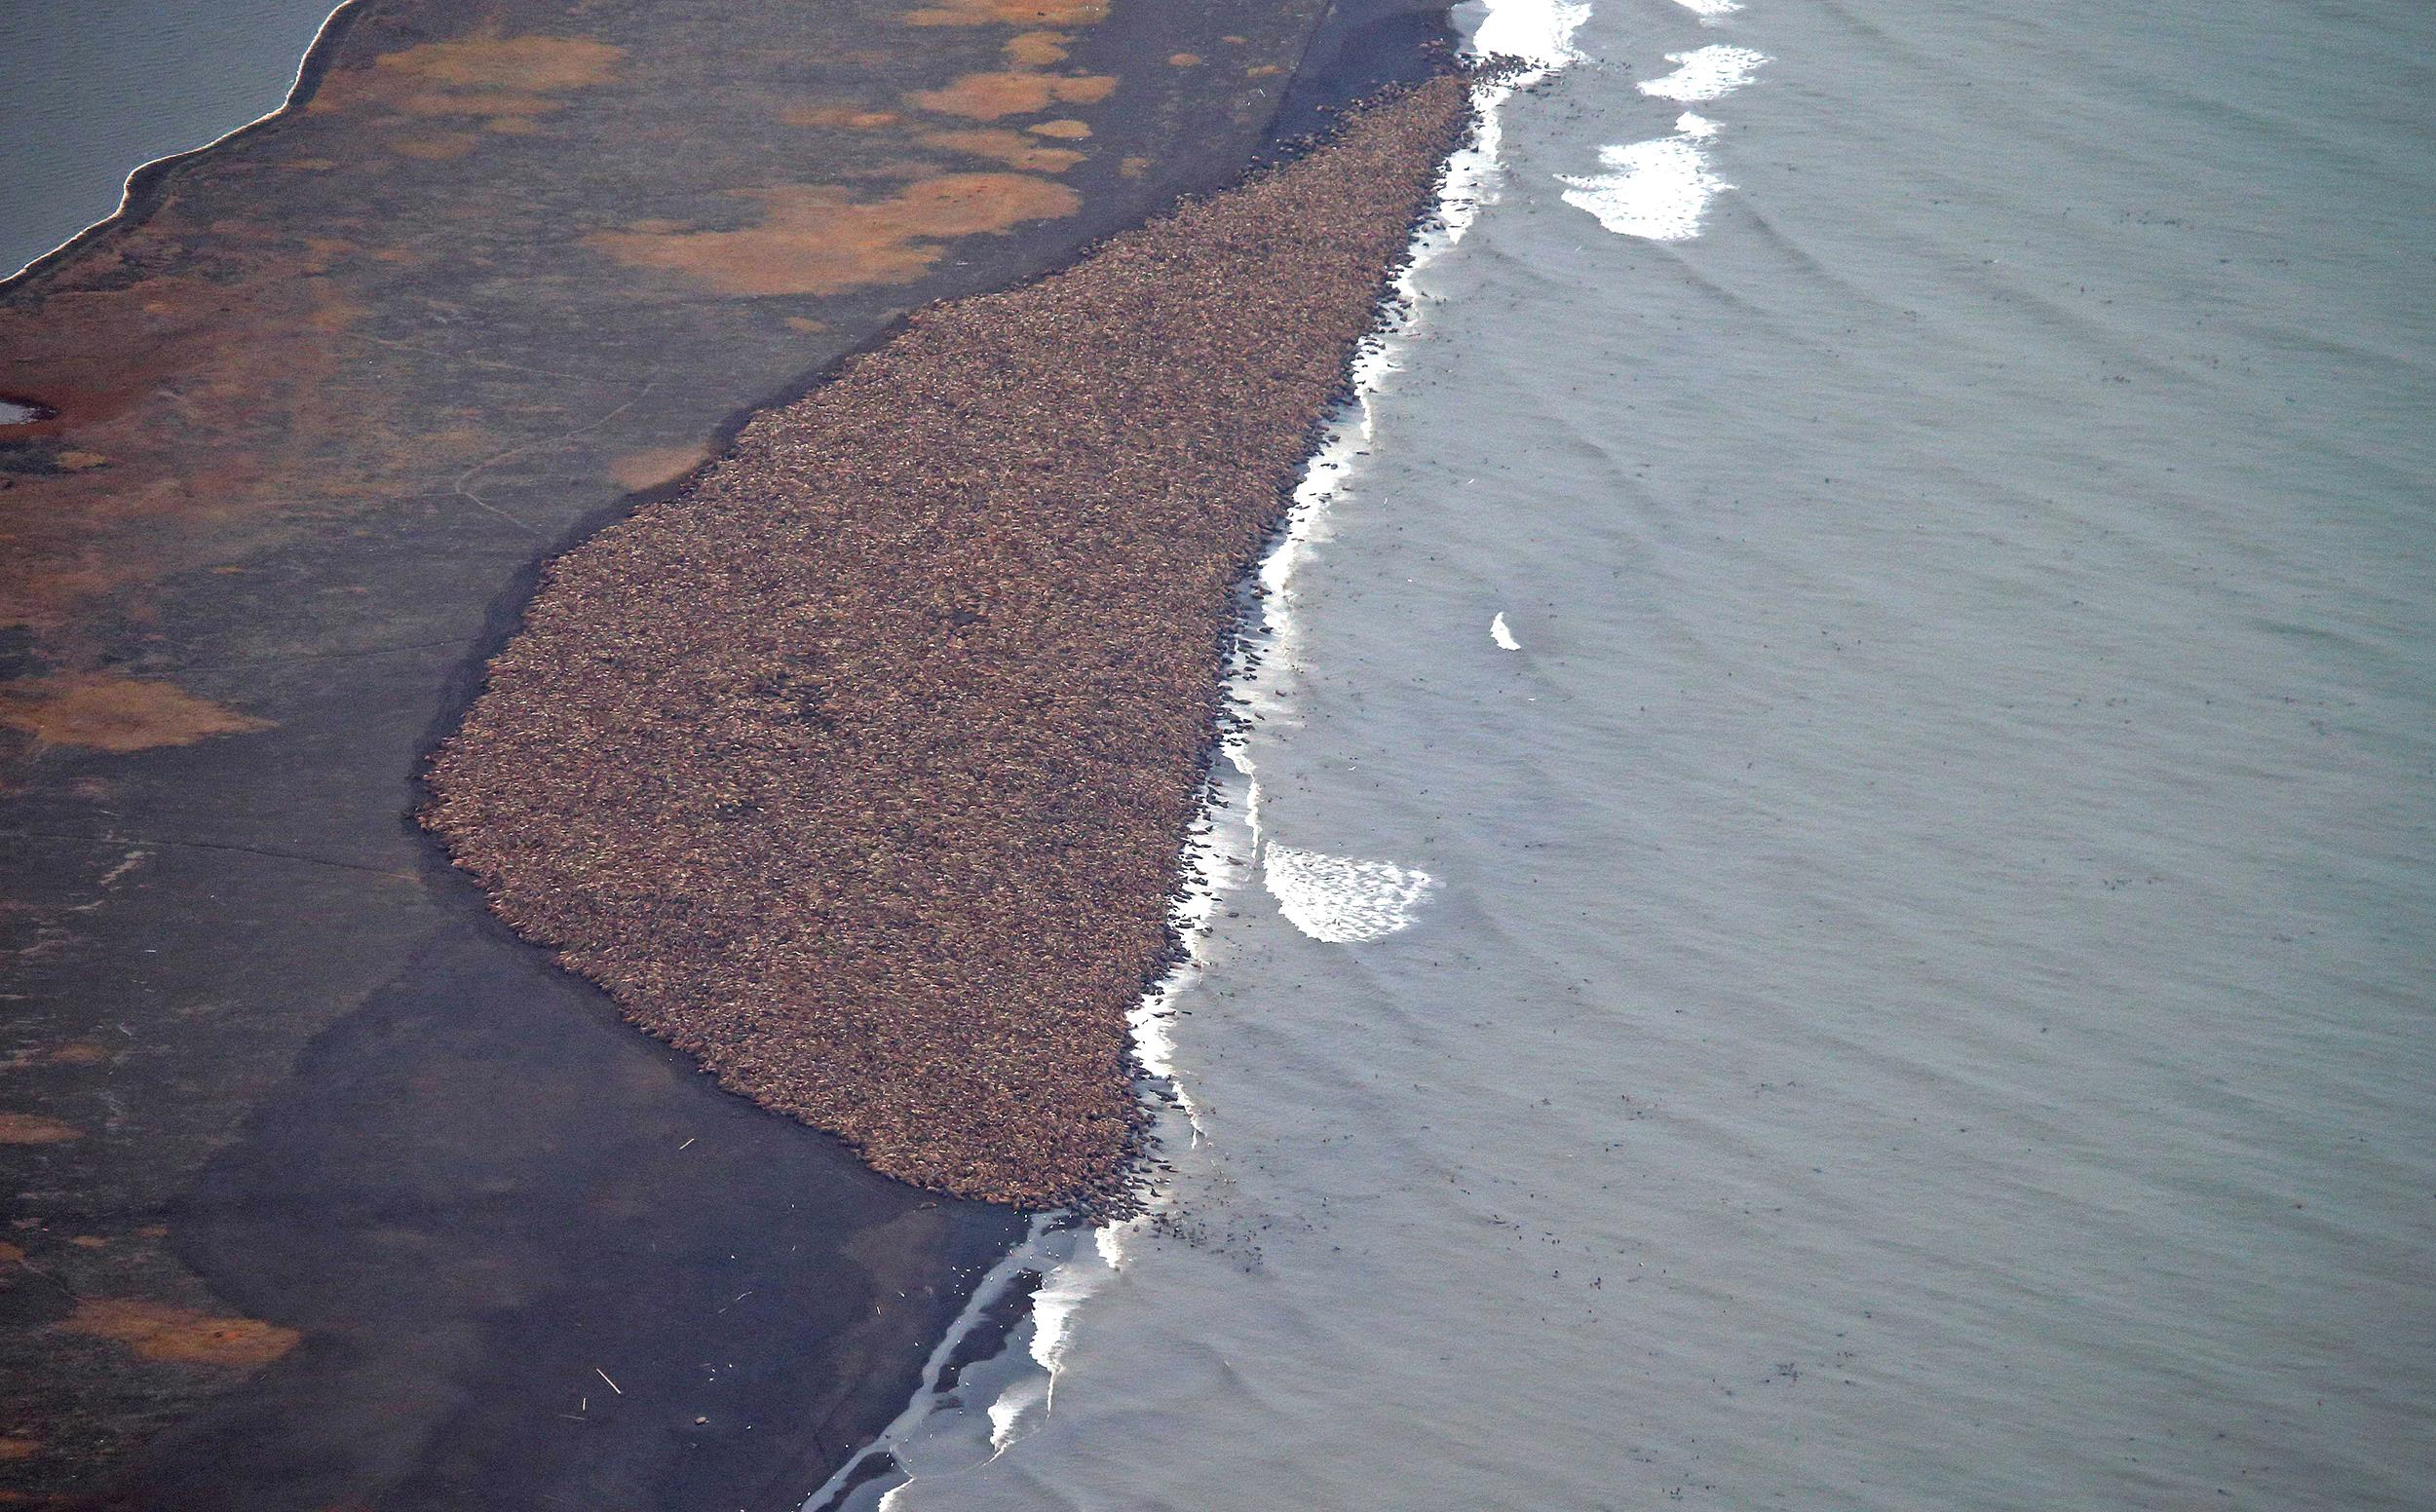 Unable to find sea ice, approximately 35,000 walruses